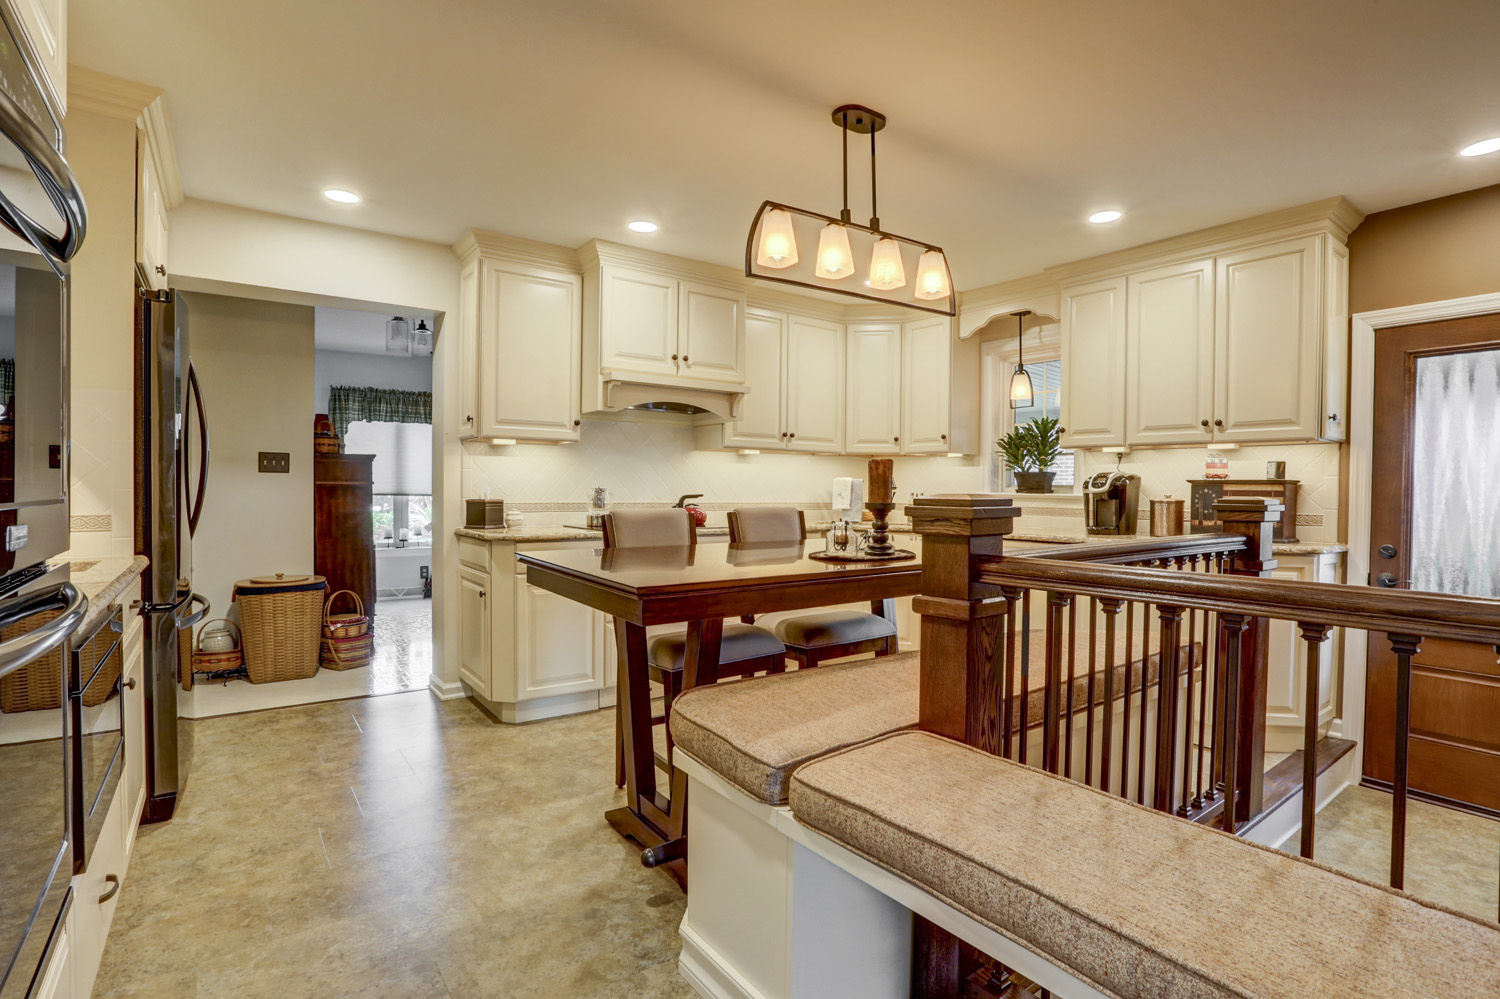 Kitchen remodel with built in bench seating